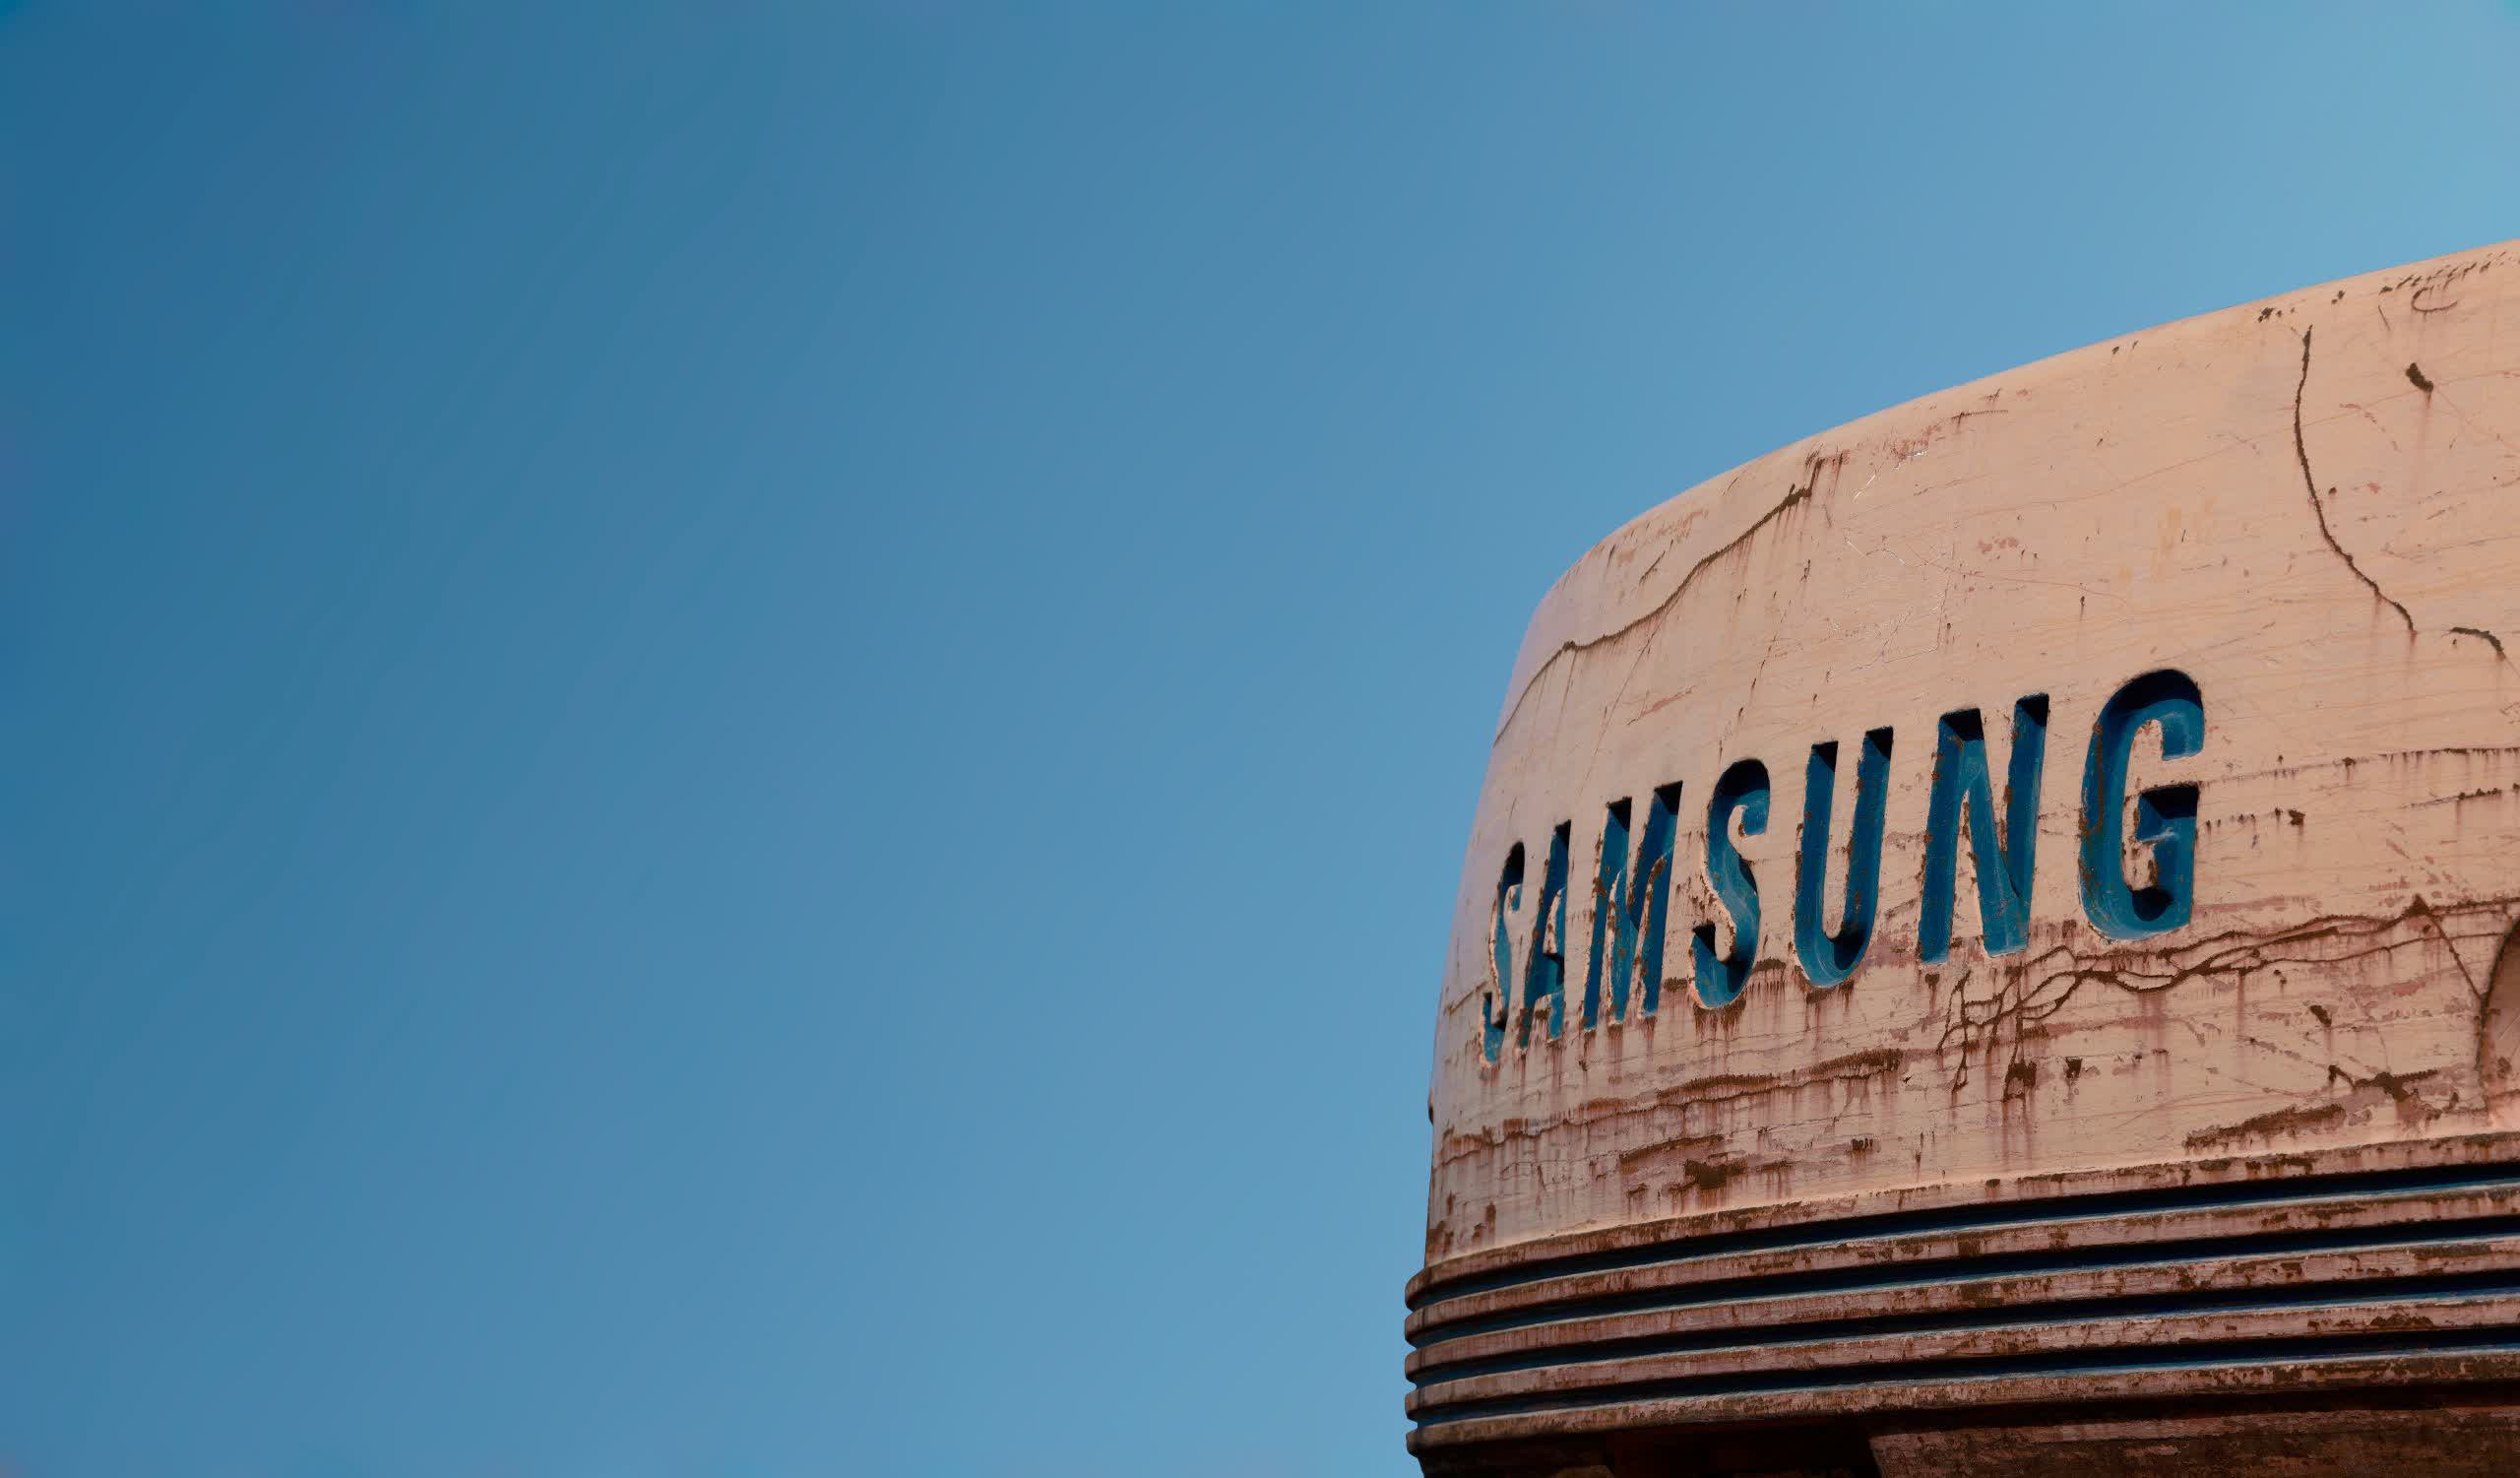 Samsung is raising chip fabrication prices to finance new foundries